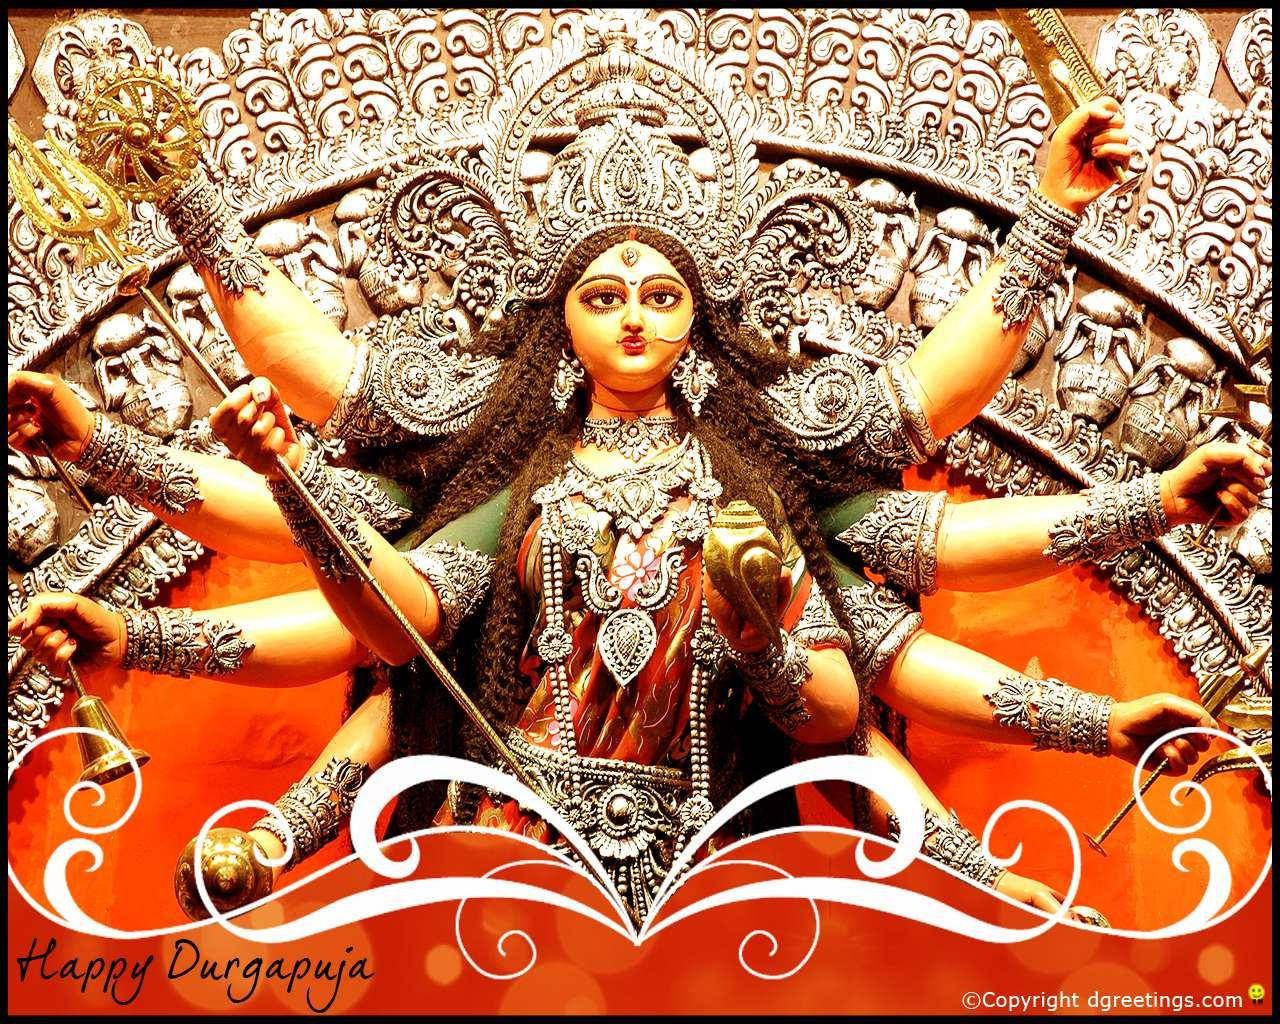 Durga Puja Hd Wallpaper: God Durga HD Wallpaper